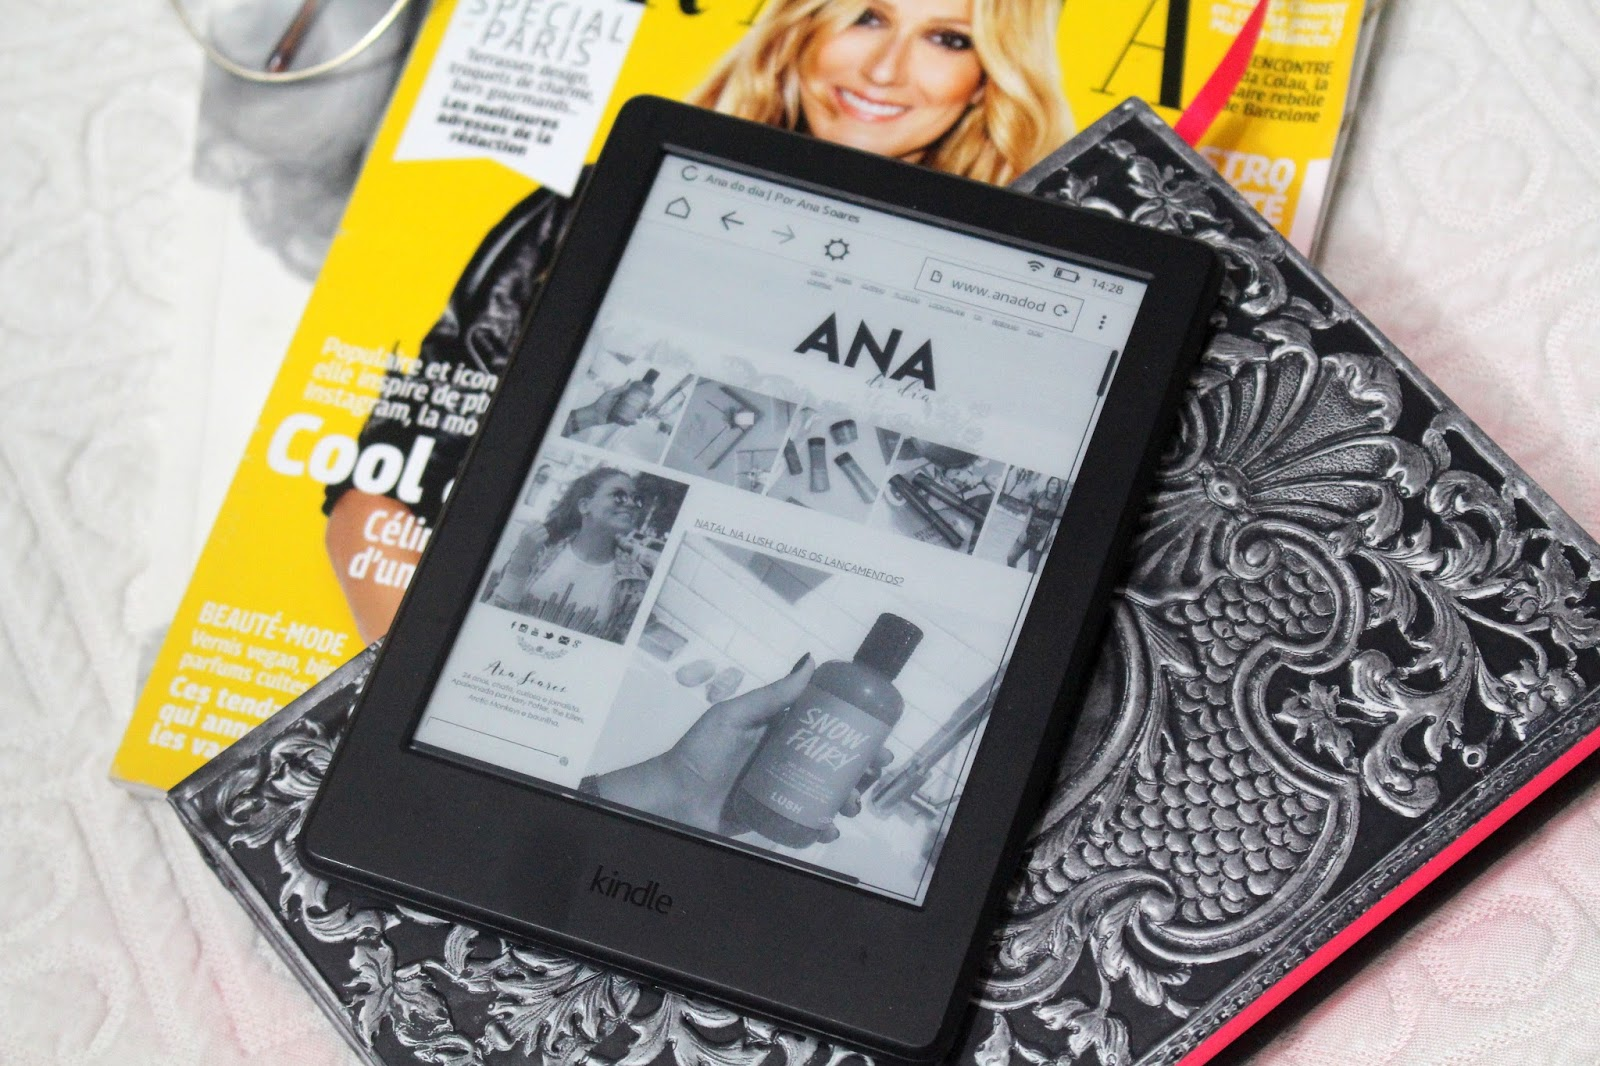 resenha kindle paperwhite amazon anadodia ana do dia